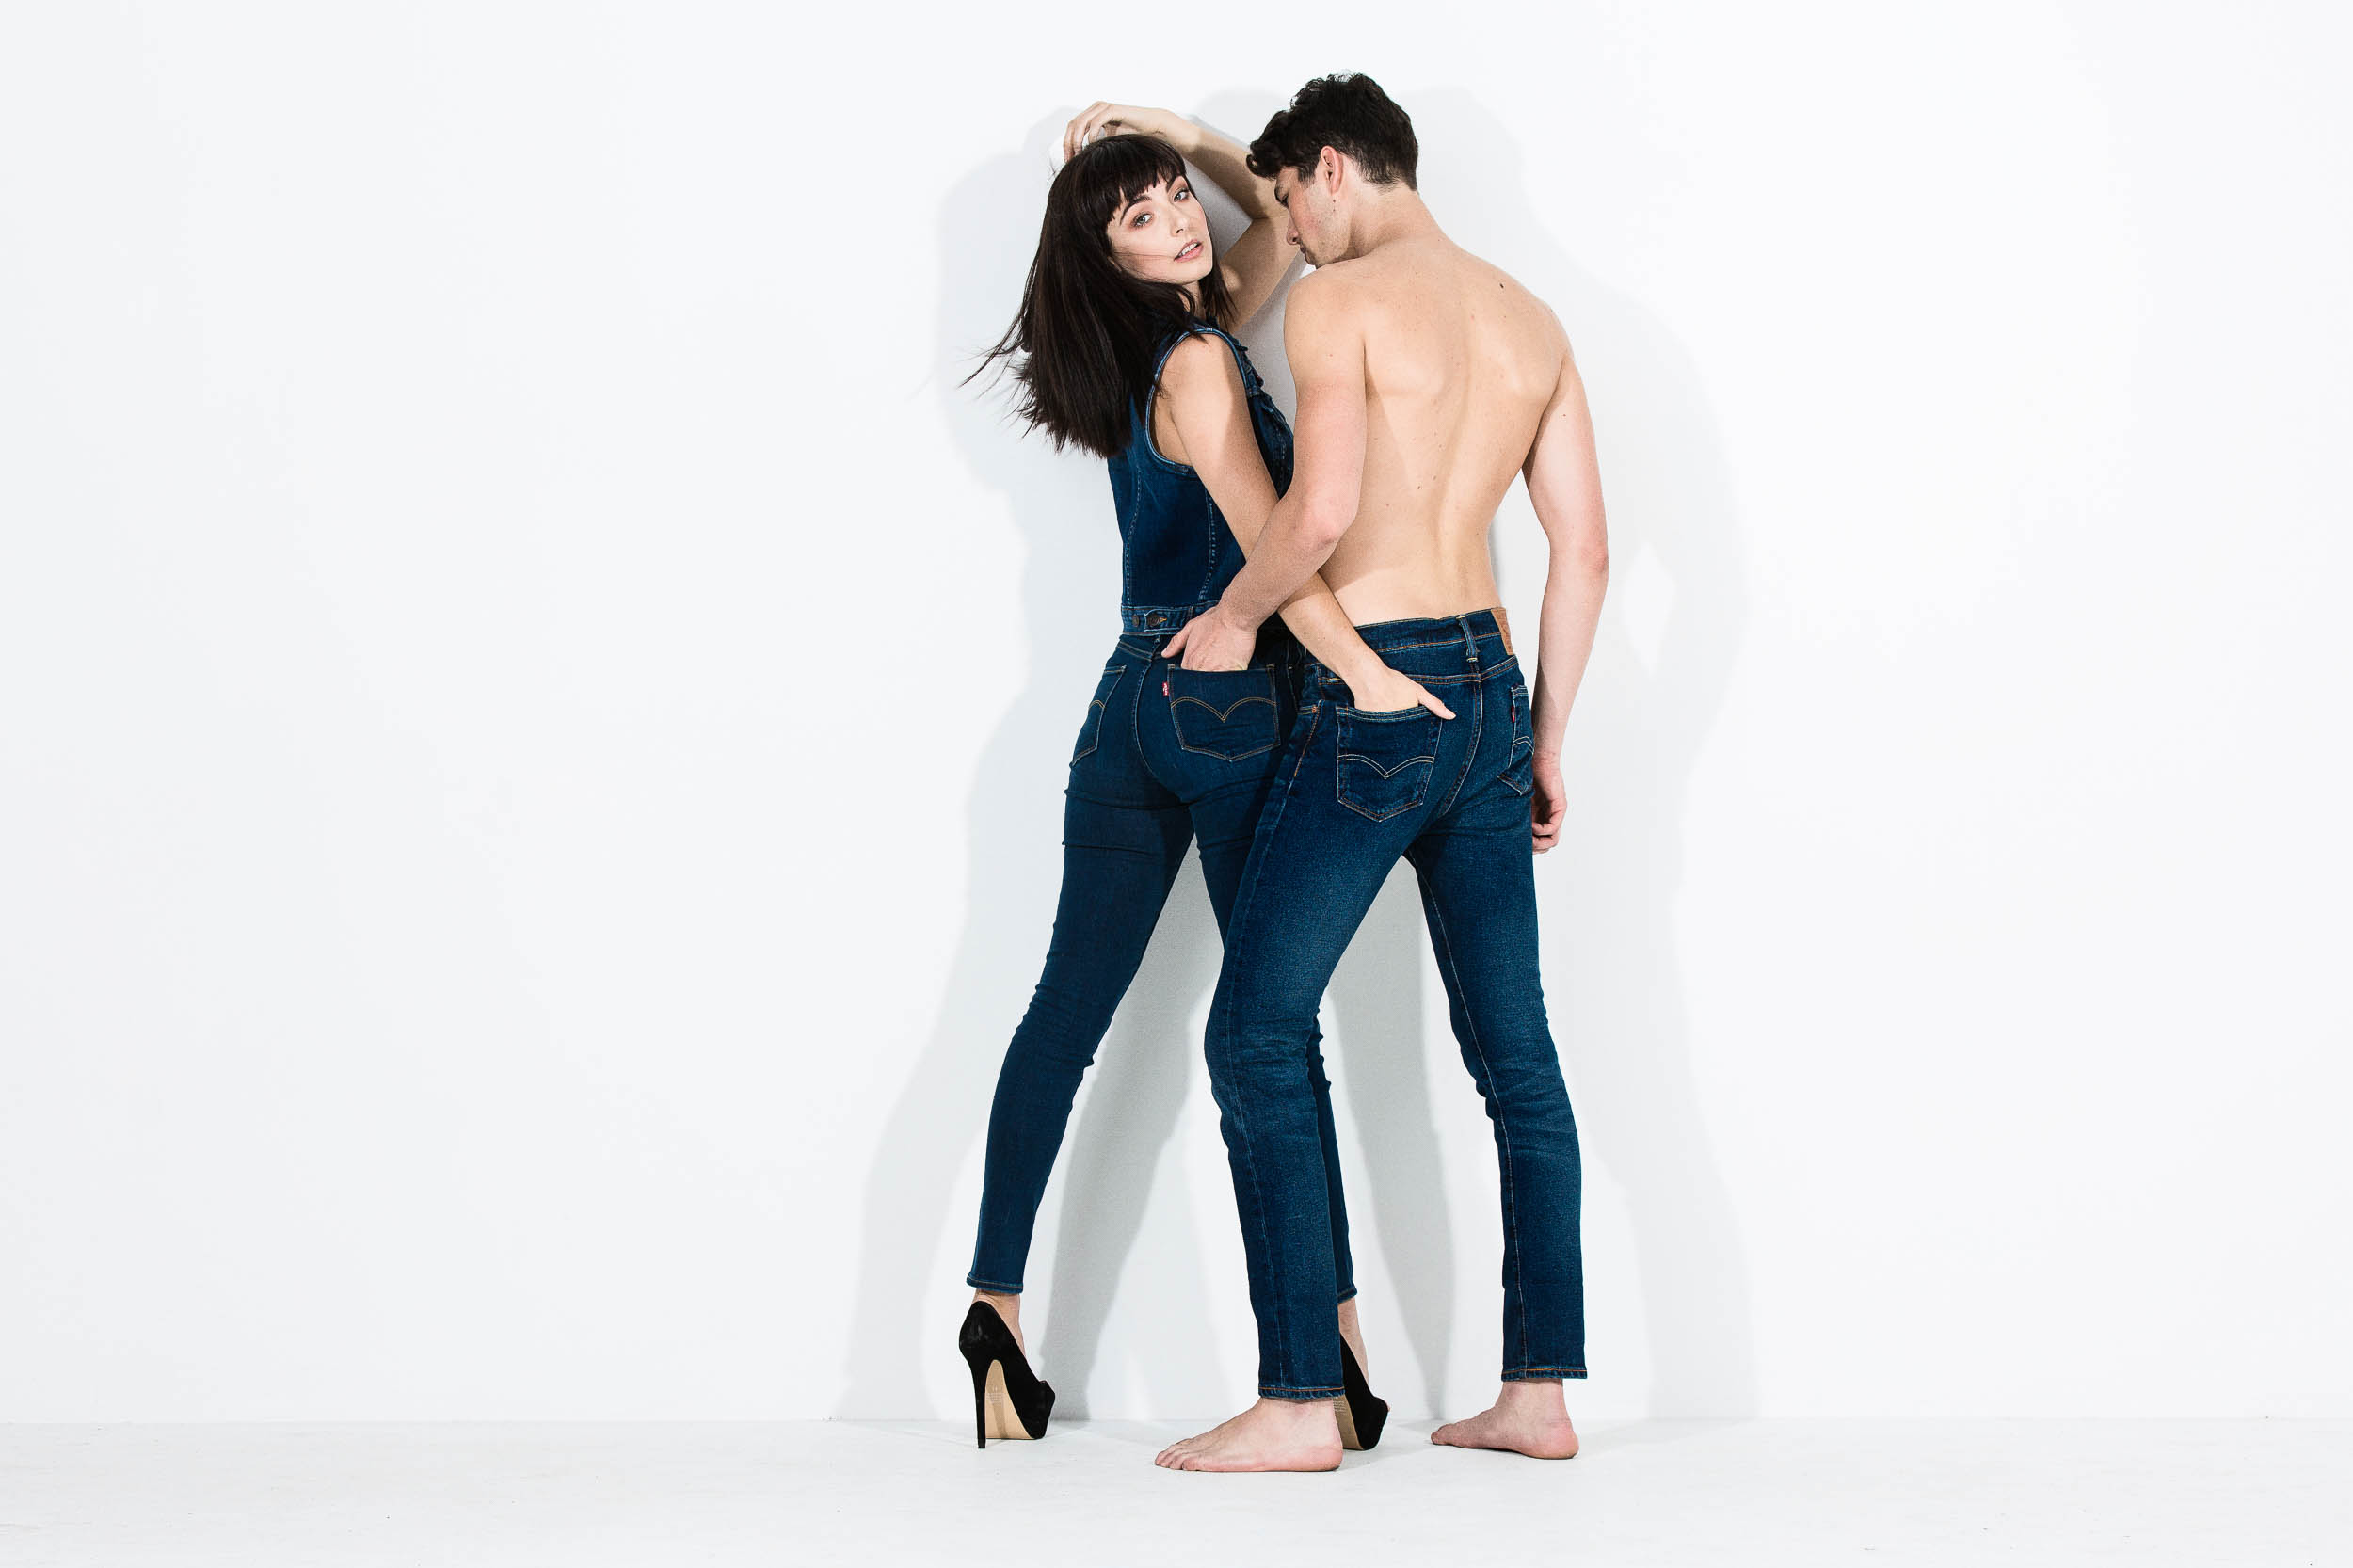 Giant Management Agency Denim Campaign by Nick Walters photographer3.jpg